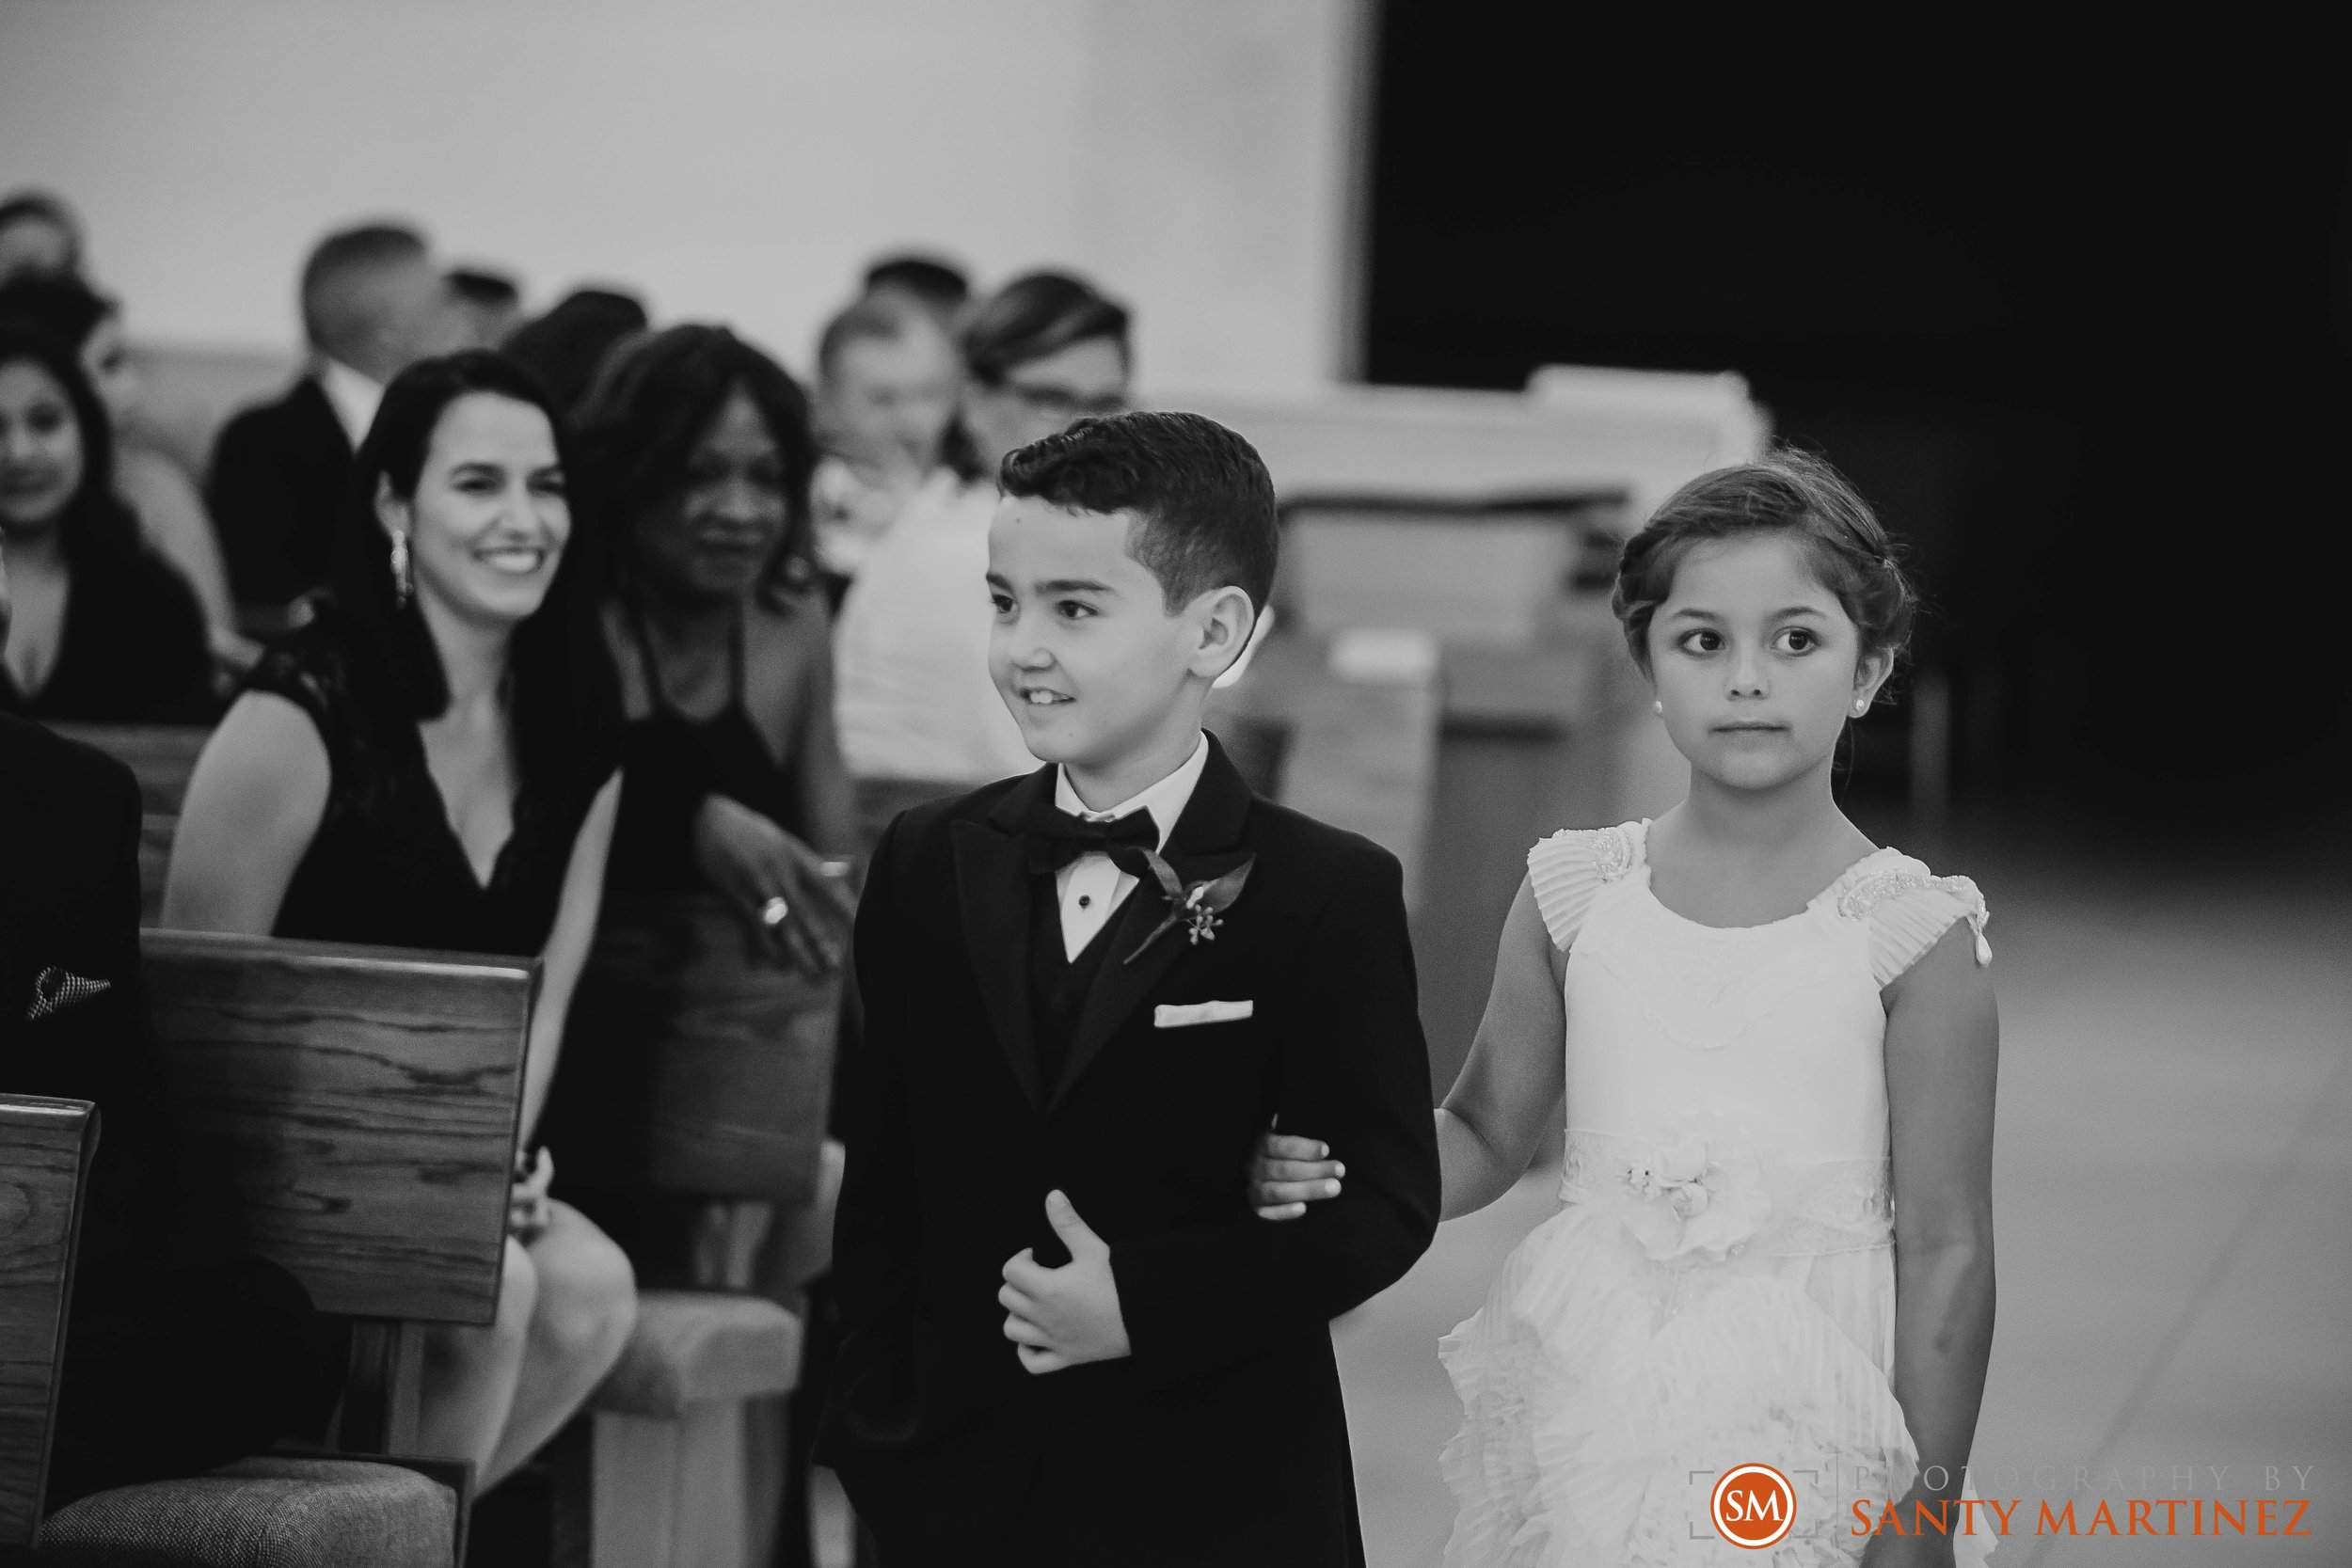 Wedding Ritz Carlton Coconut Grove - Santy Martinez-17.jpg